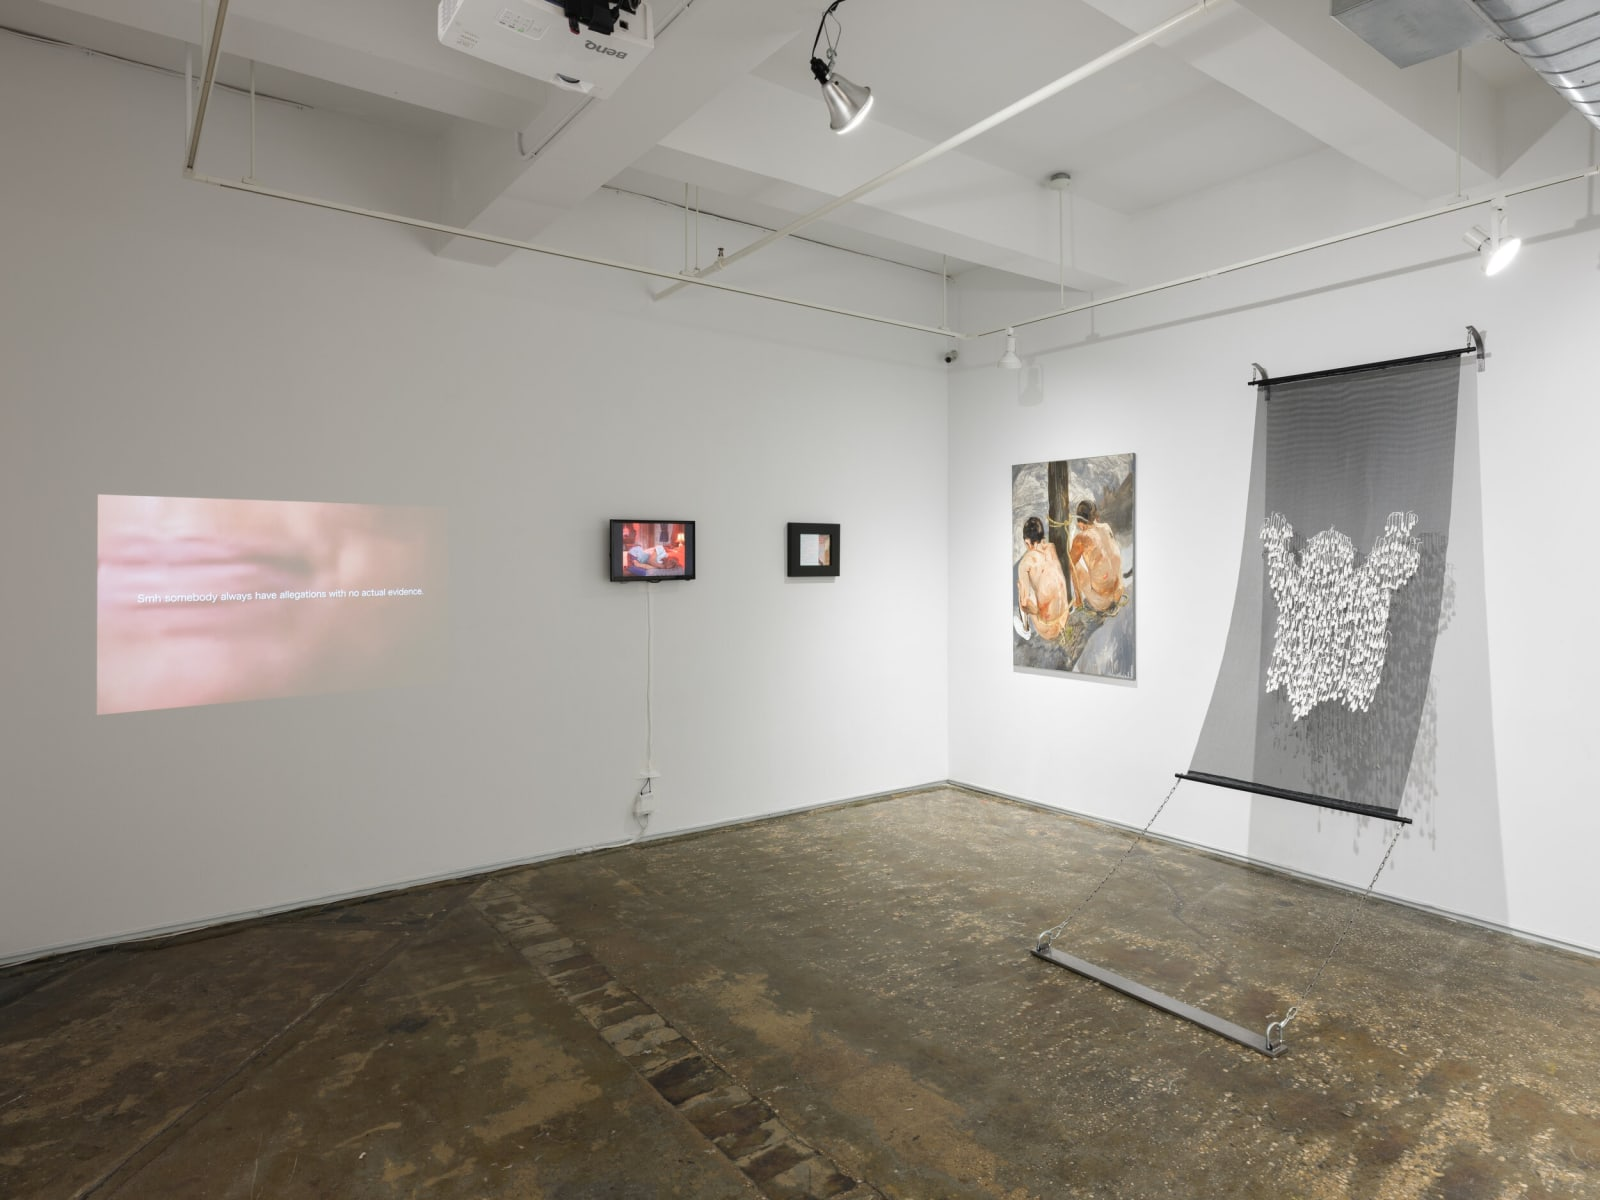 Installation view of CURRENTS: An Overwhelming Response at A.I.R. Gallery, New York January 10 - February 9, 2020 Photo courtesy of A.I.R. Gallery